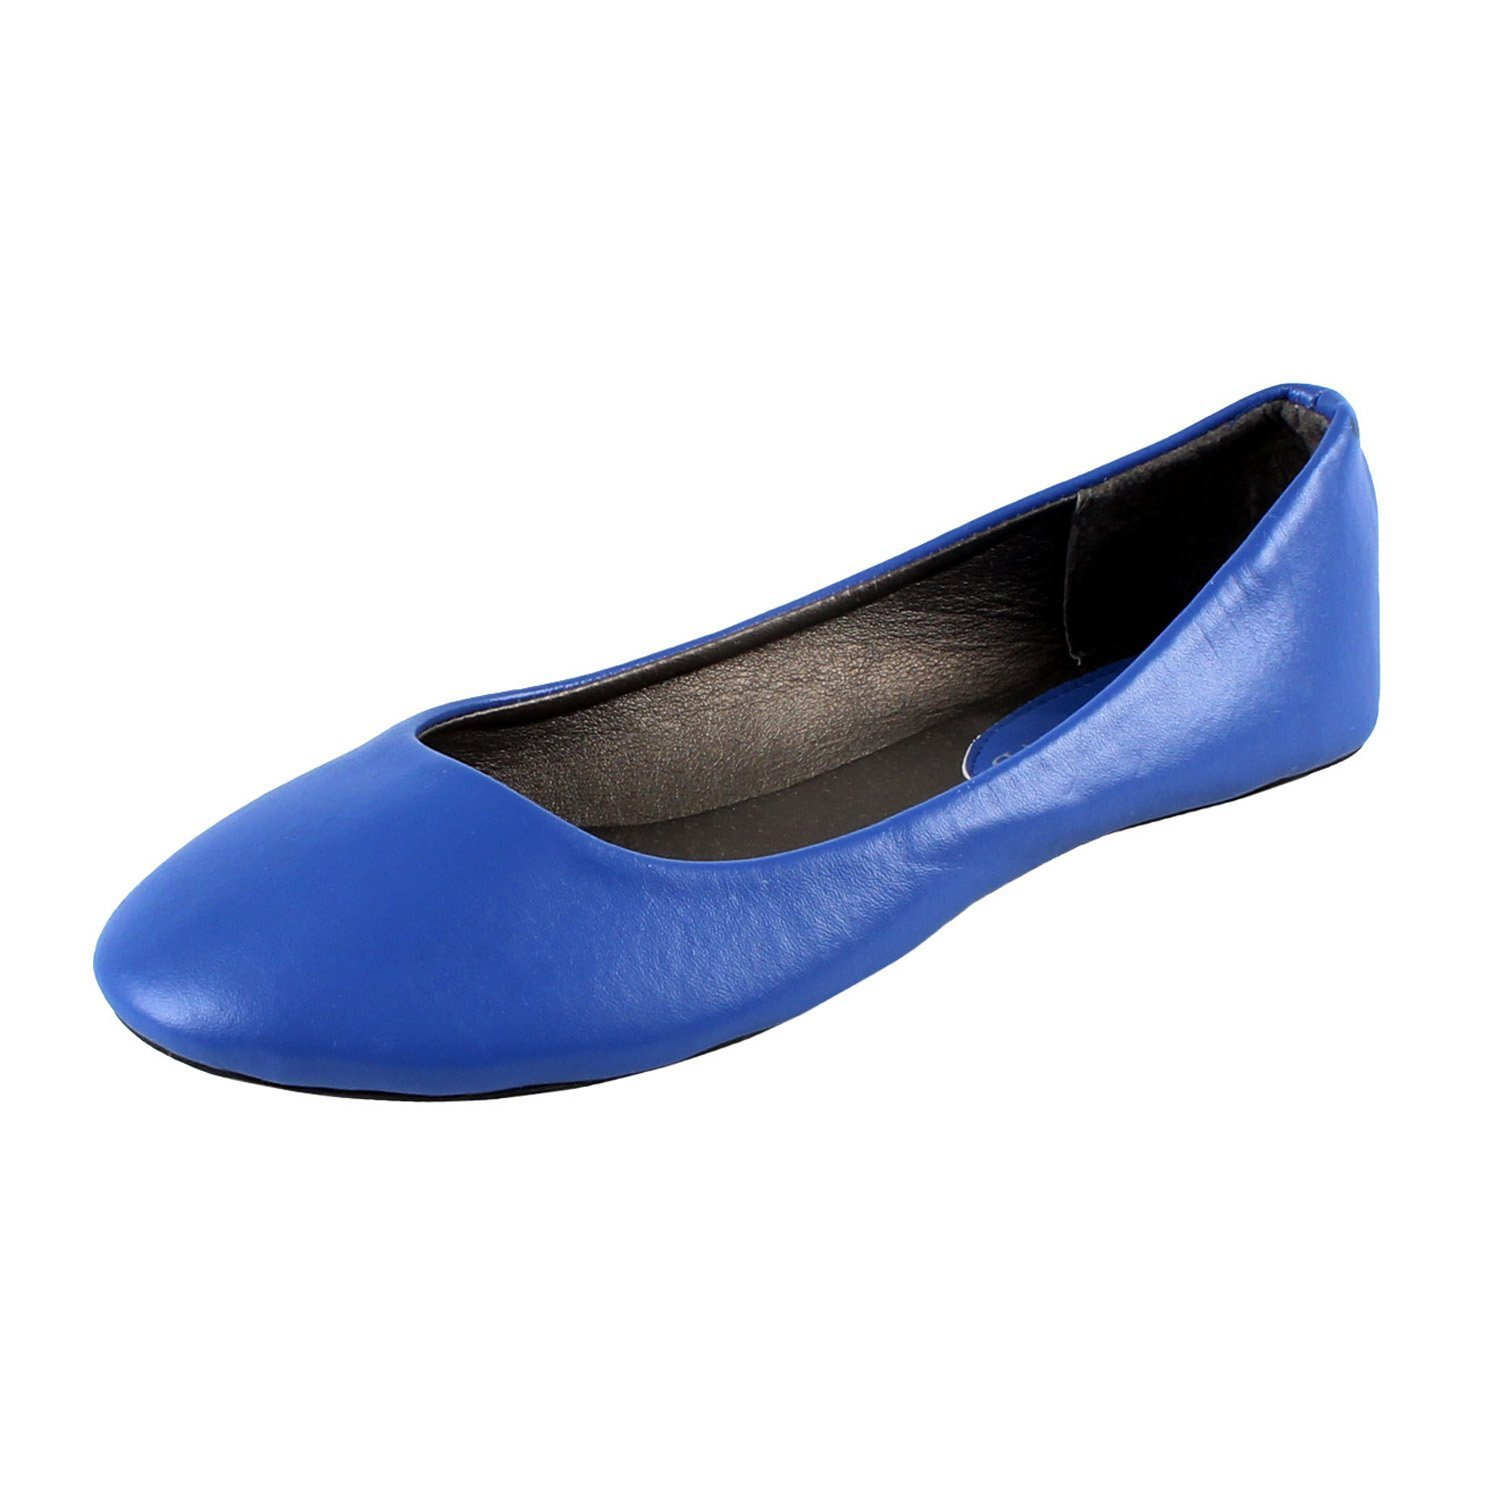 Women's New Dev-9 Round Toe Ballet Flats Ballerina Runs Small Consider Going One Size Up B01MYO5UQS Small / 8 B(M) US|Blue Pu